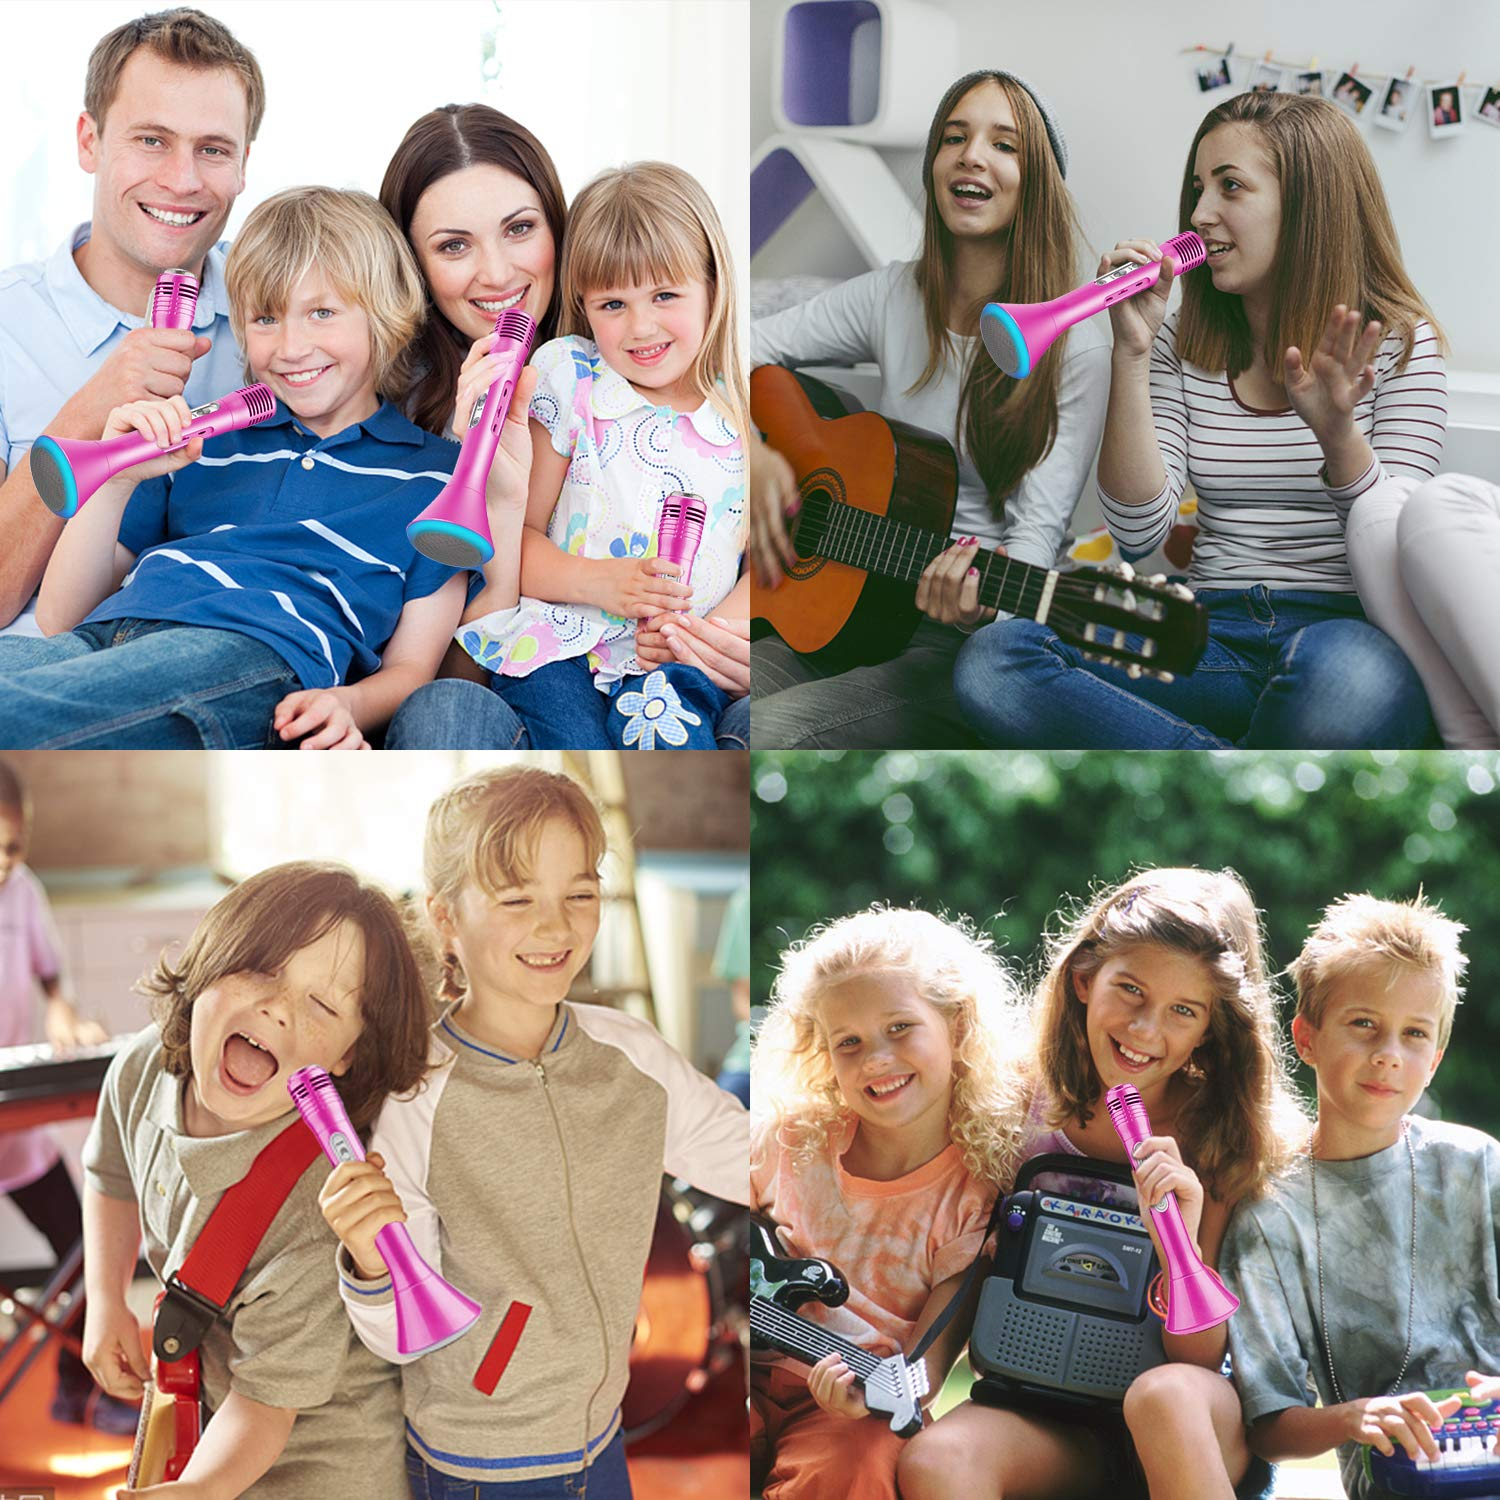 Kids Wireless Karaoke Microphone with Speaker Colorful LED Light for Girls Boys Toddlers Portable Handheld Bluetooth Music Toys for Singing Music Playing Party KTV Support iOS Android Birthday Gifts by iGeeKid (Image #7)